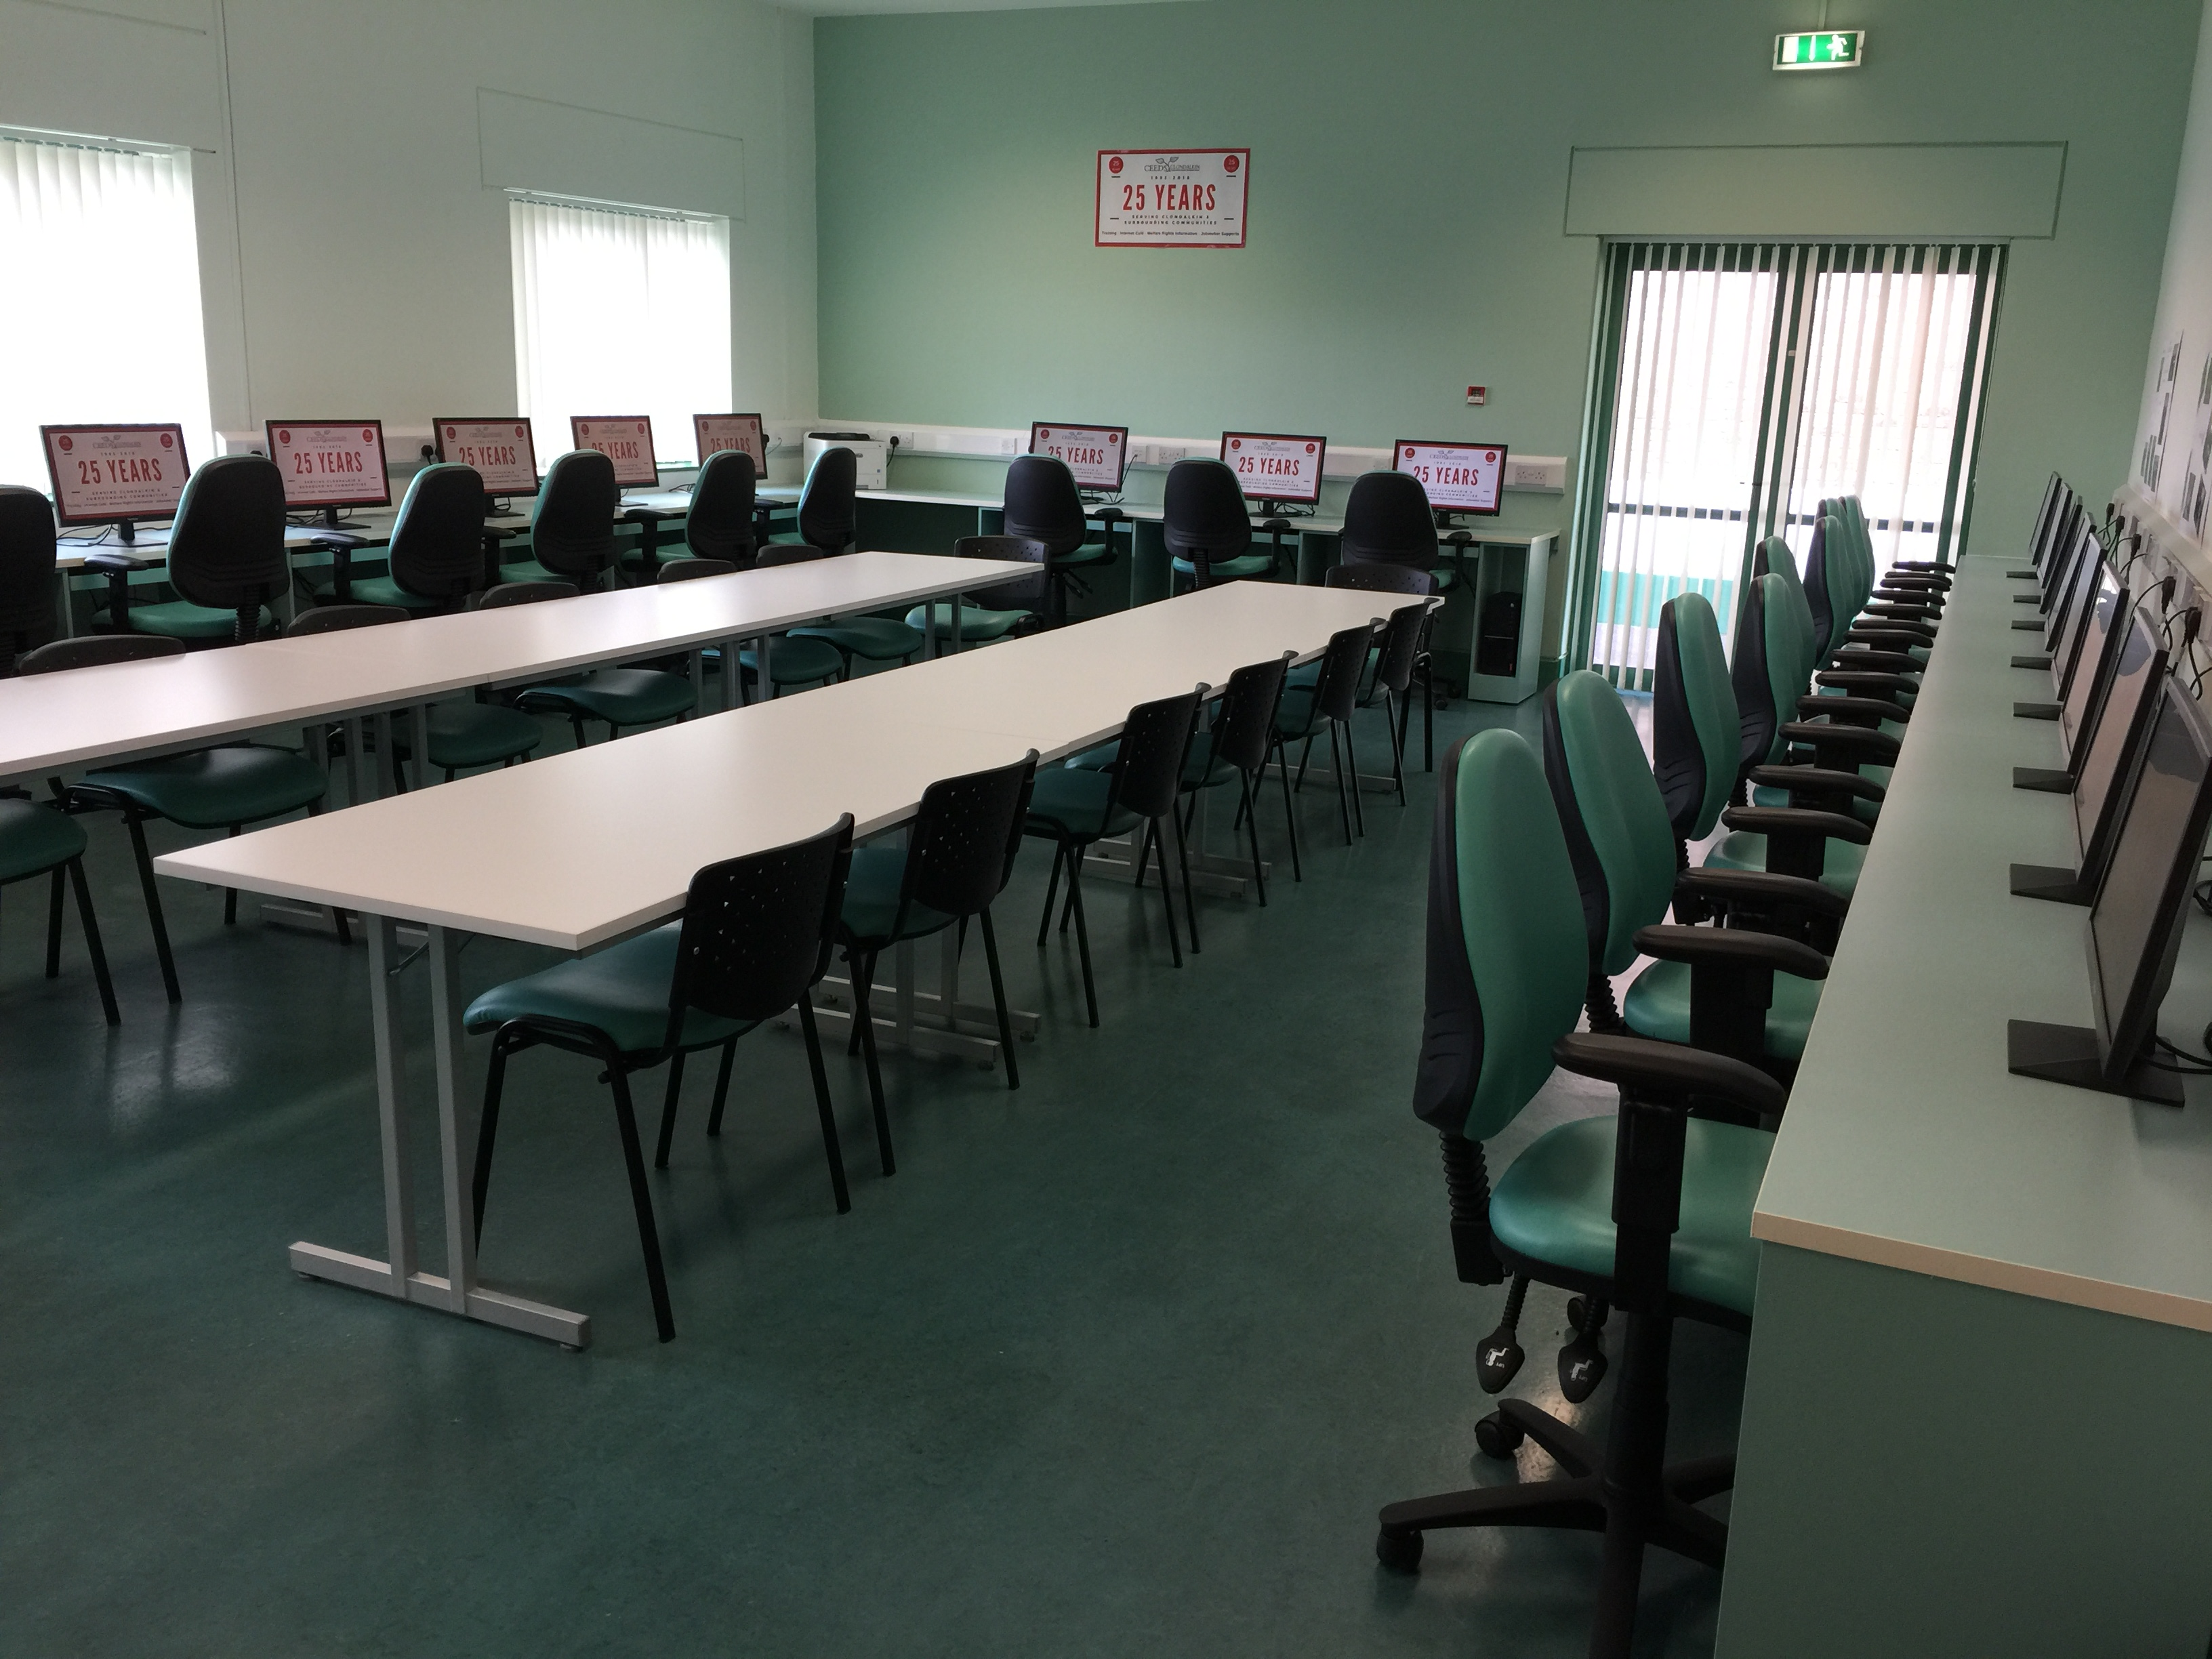 Computer training room rental Dublin